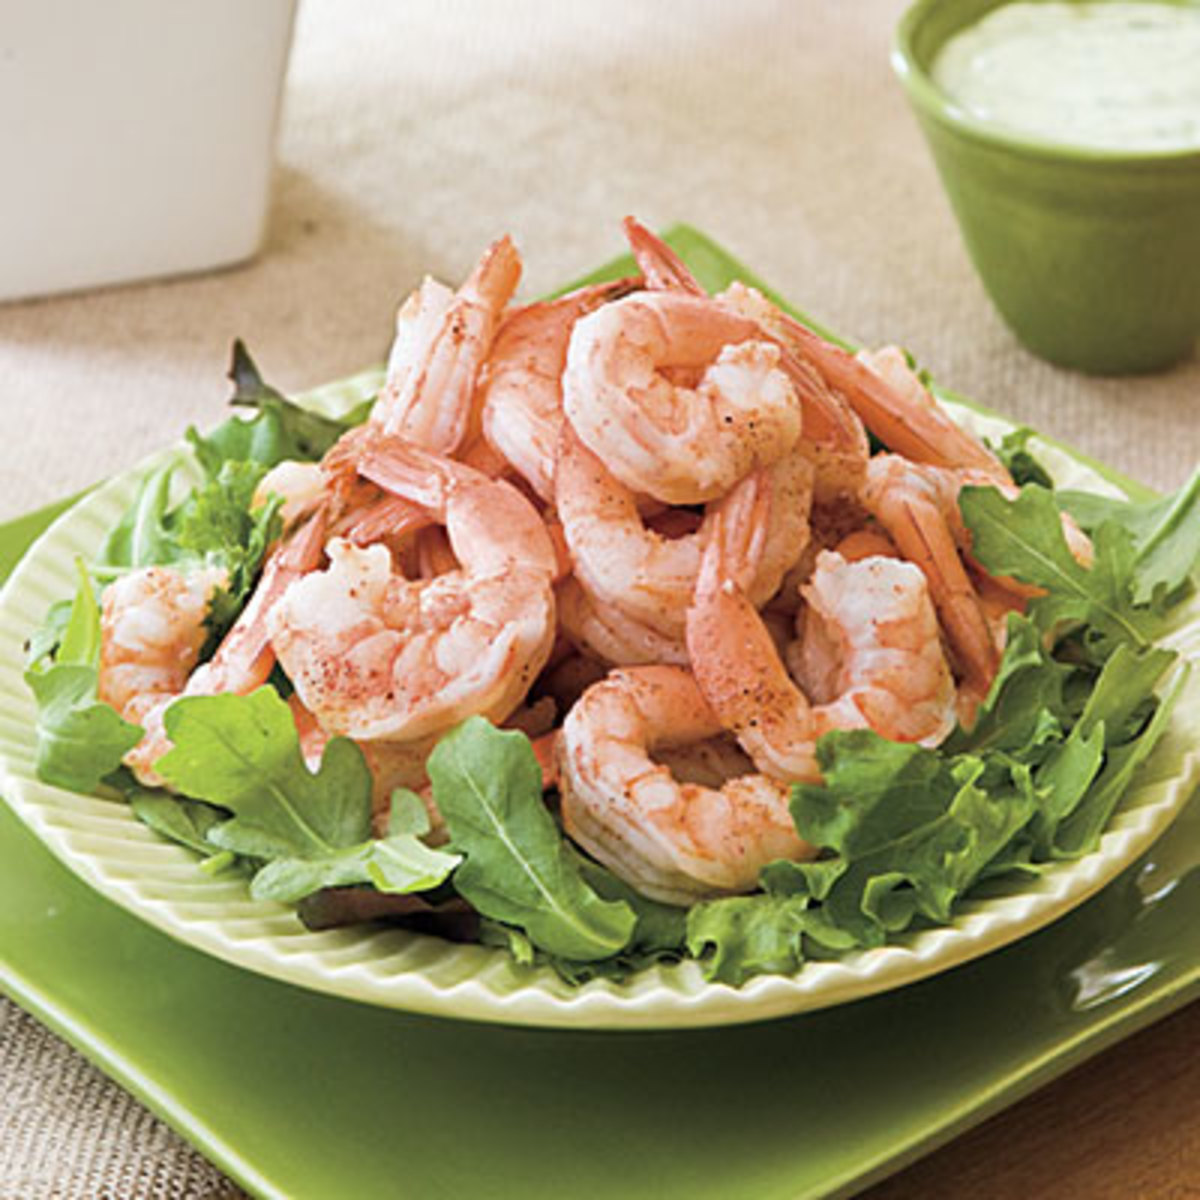 Spicy Boiled Shrimp and Creamy Buttermilk Avocado Sauce